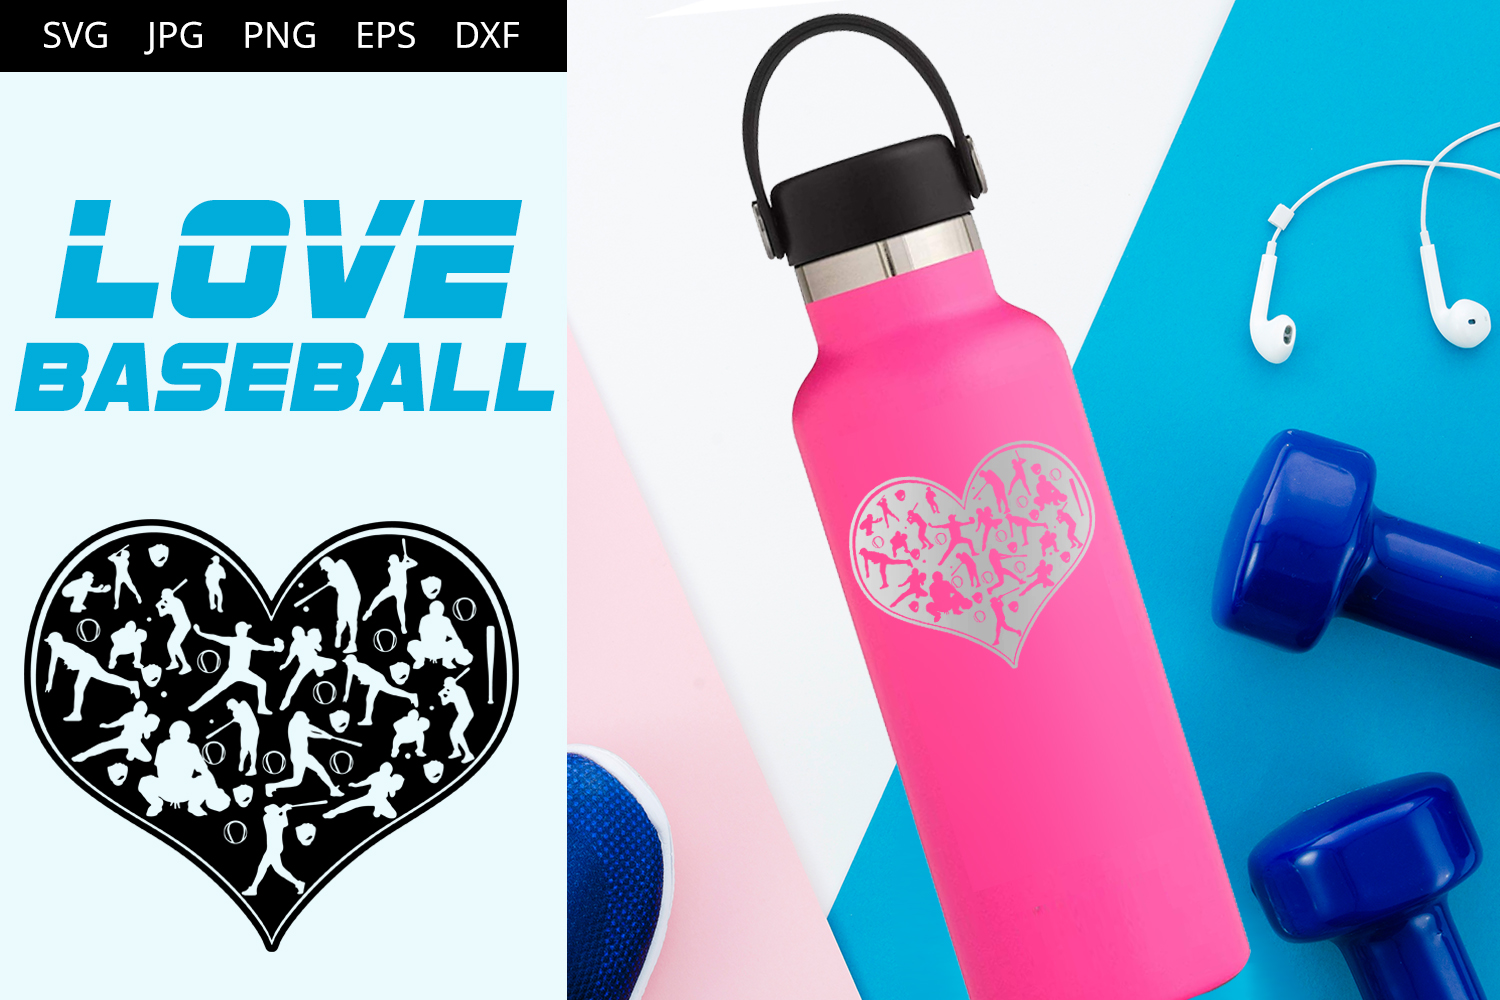 Download Free Love Baseball Graphic By Thesilhouettequeenshop Creative Fabrica for Cricut Explore, Silhouette and other cutting machines.